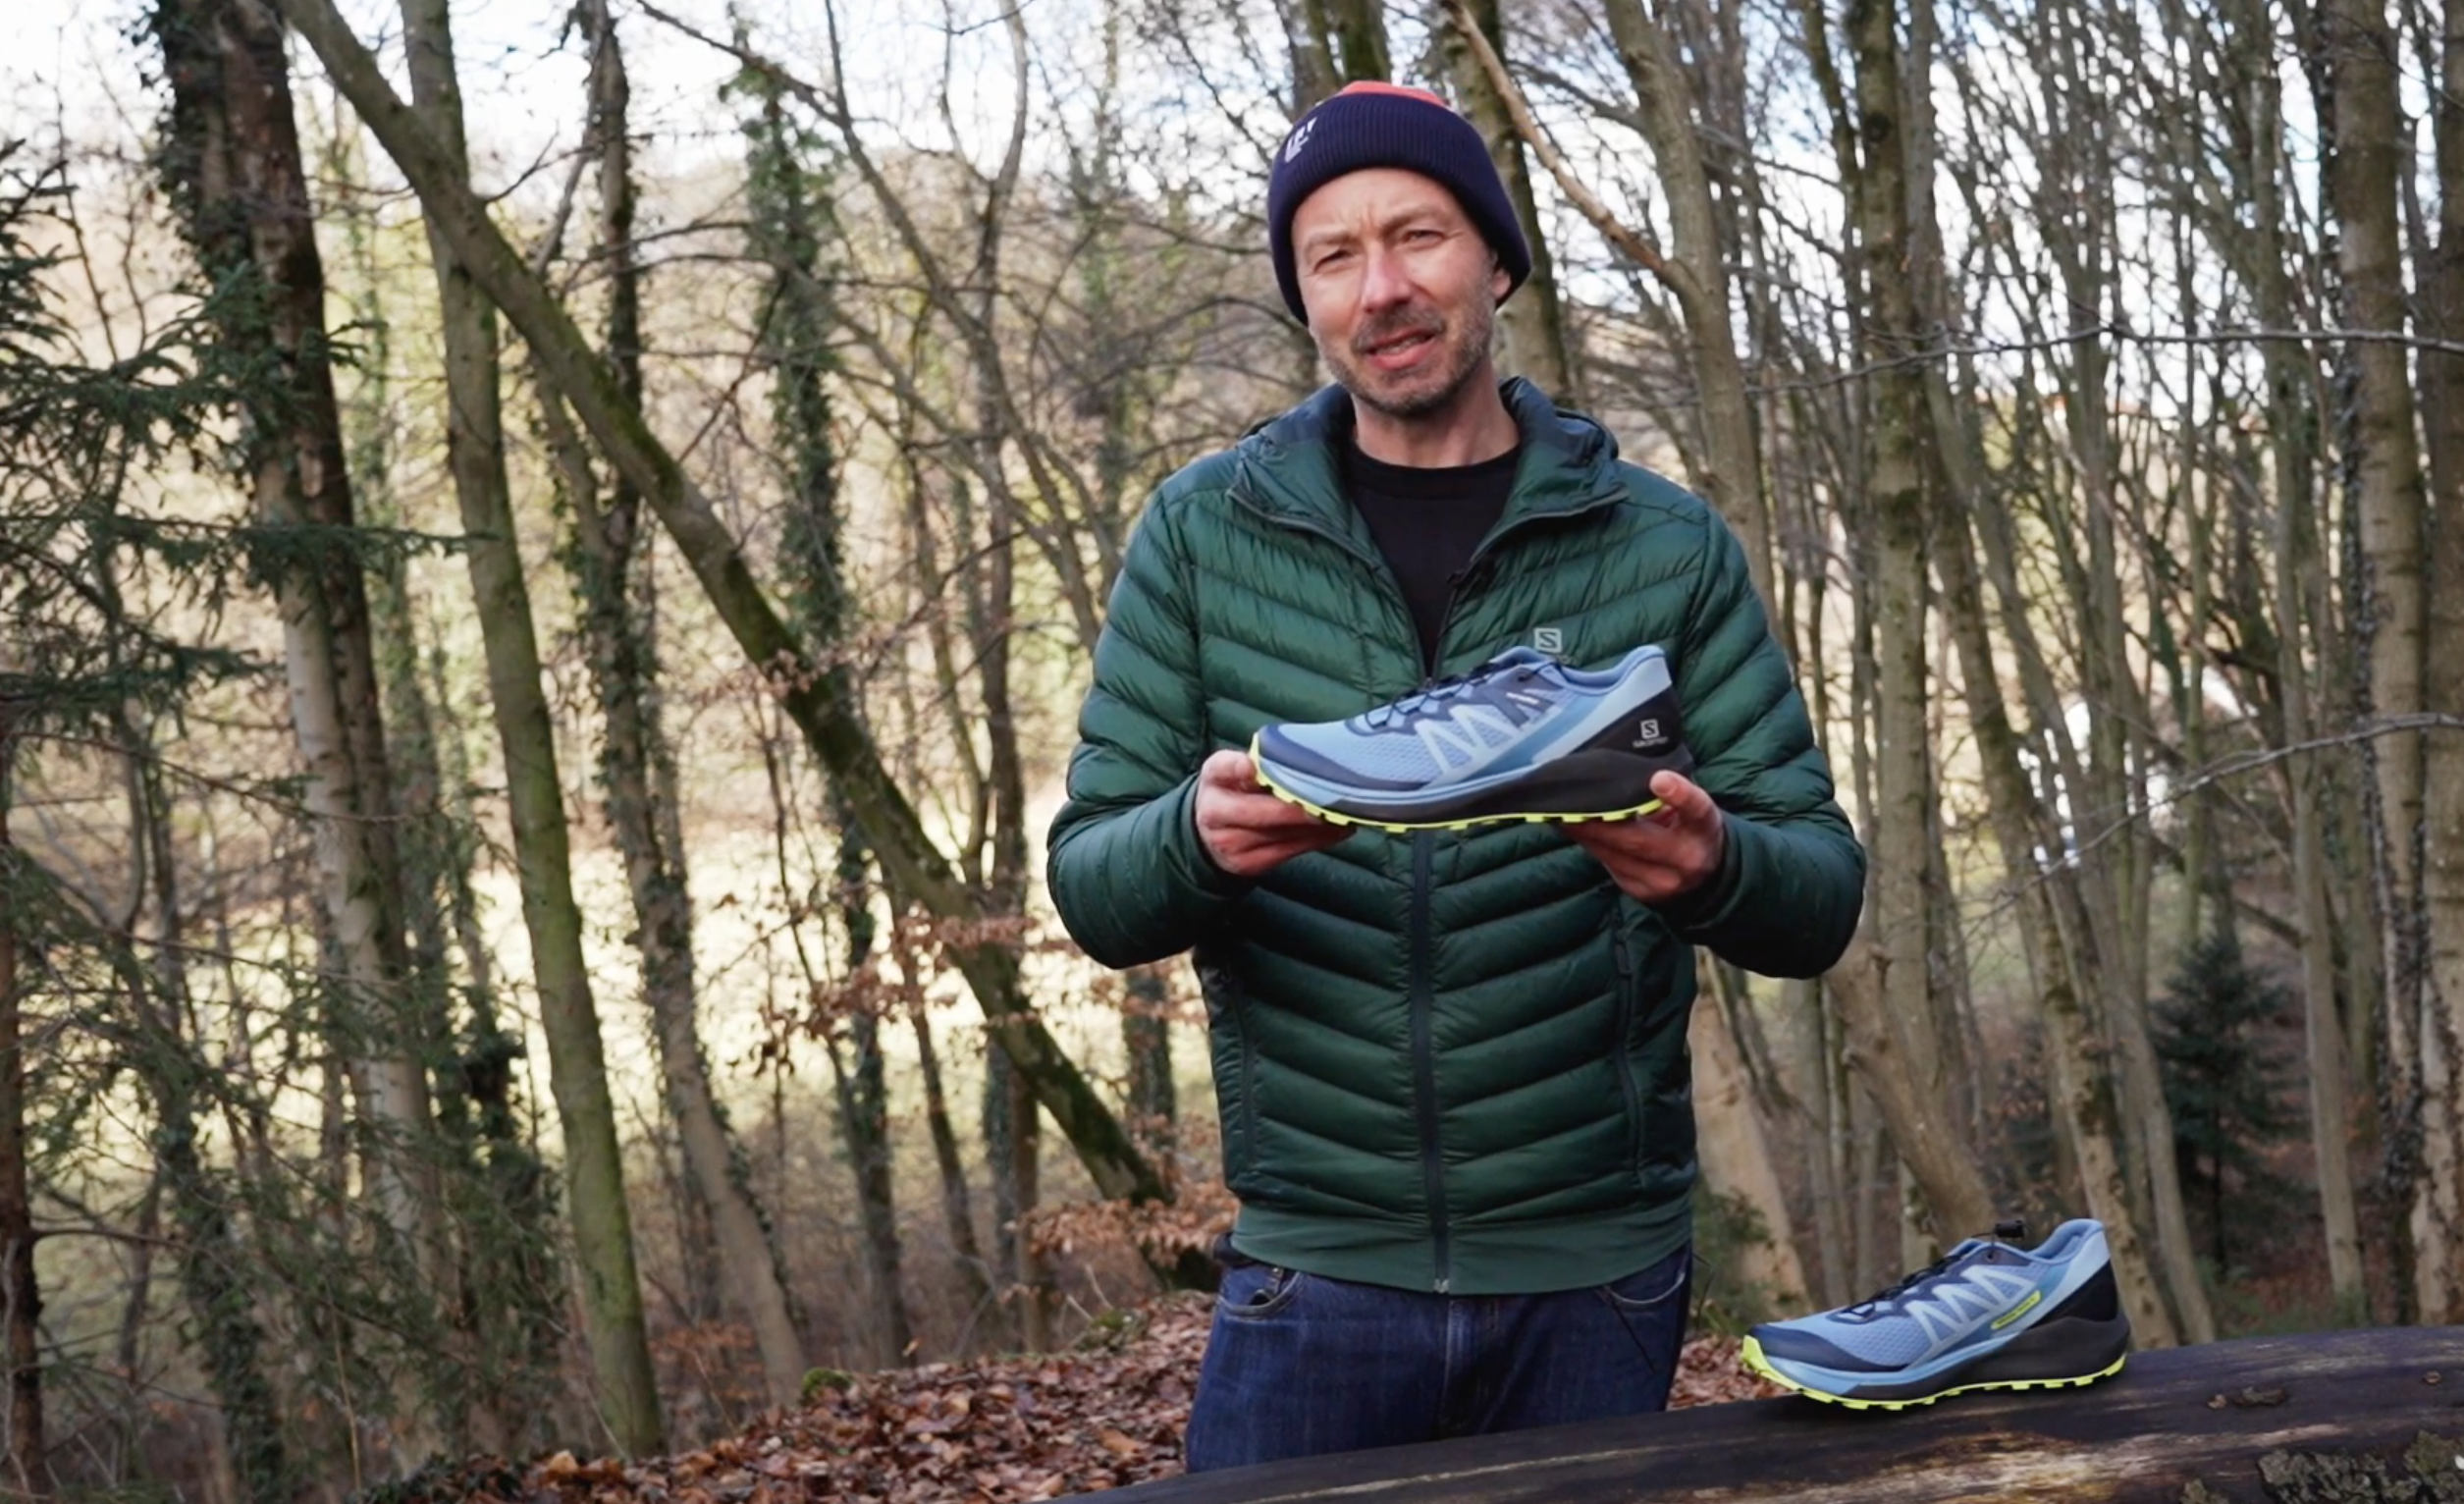 Im Test: Salomon Sense Ride 4